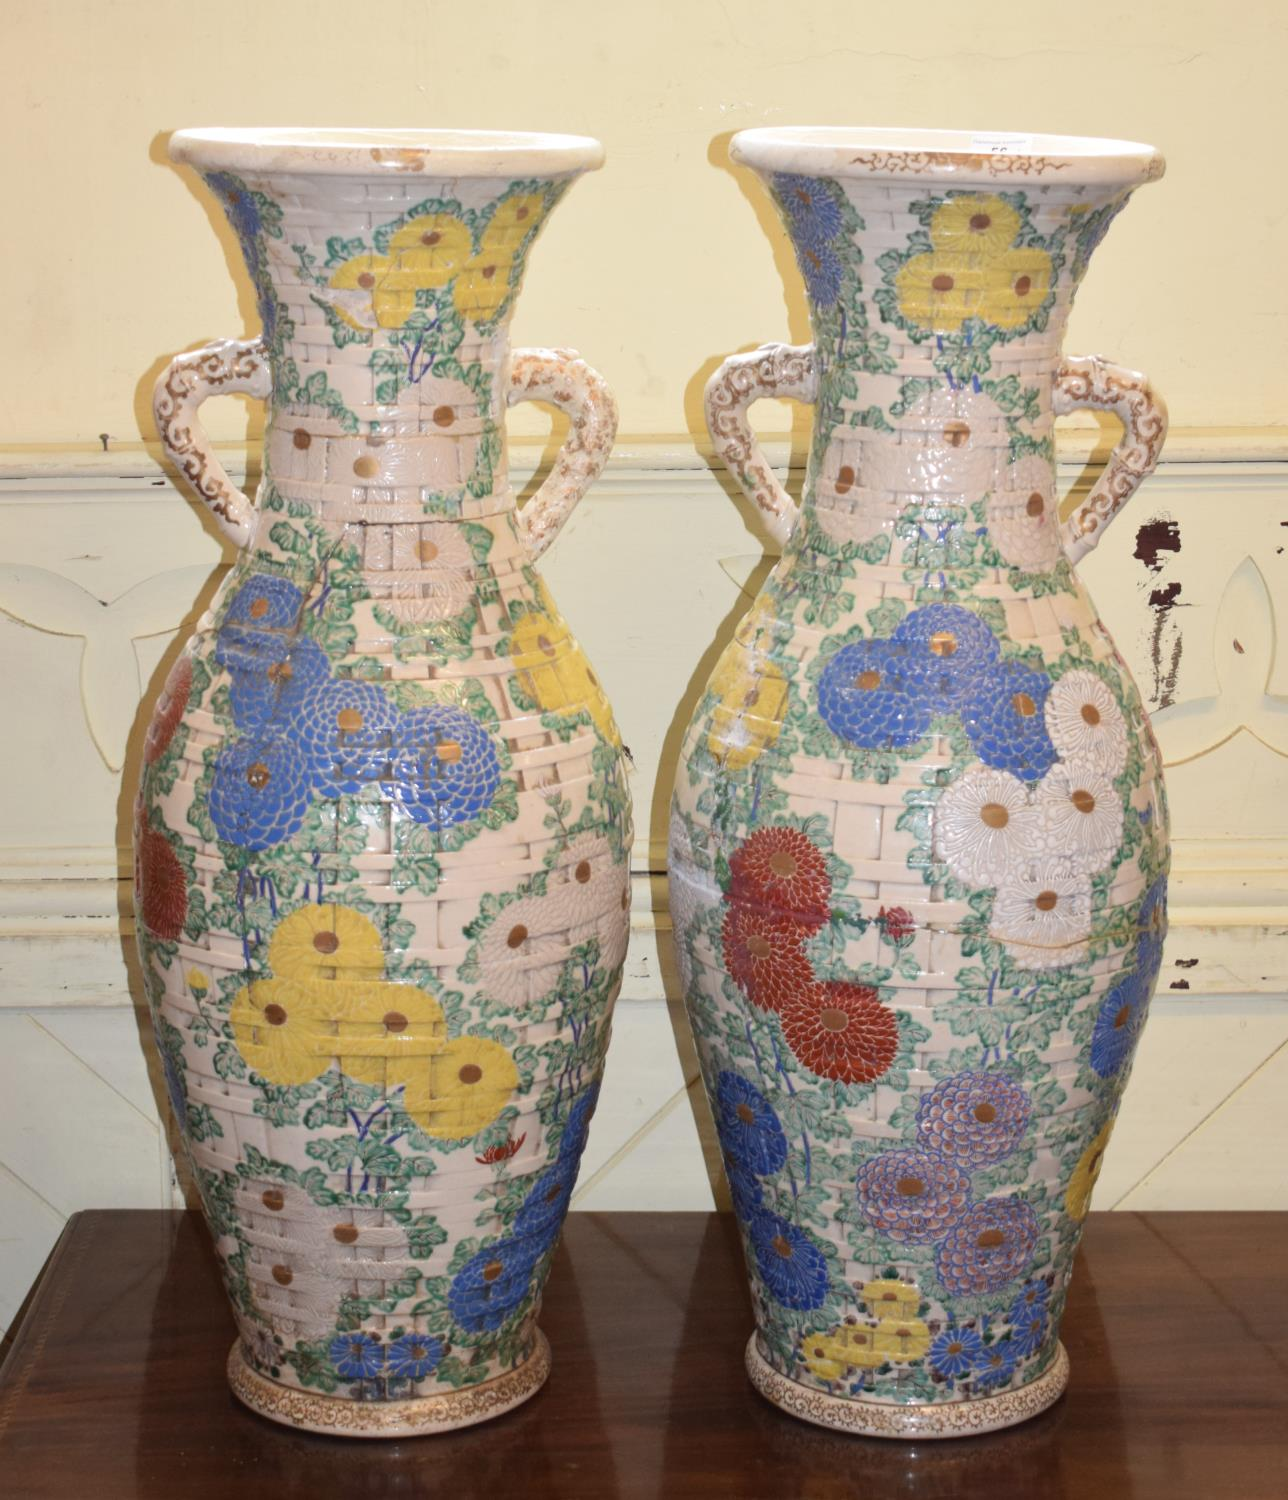 Lot 56 - A large pair of Japanese Satsuma baluster vases, moulded in the form of baskets, decorated flowers